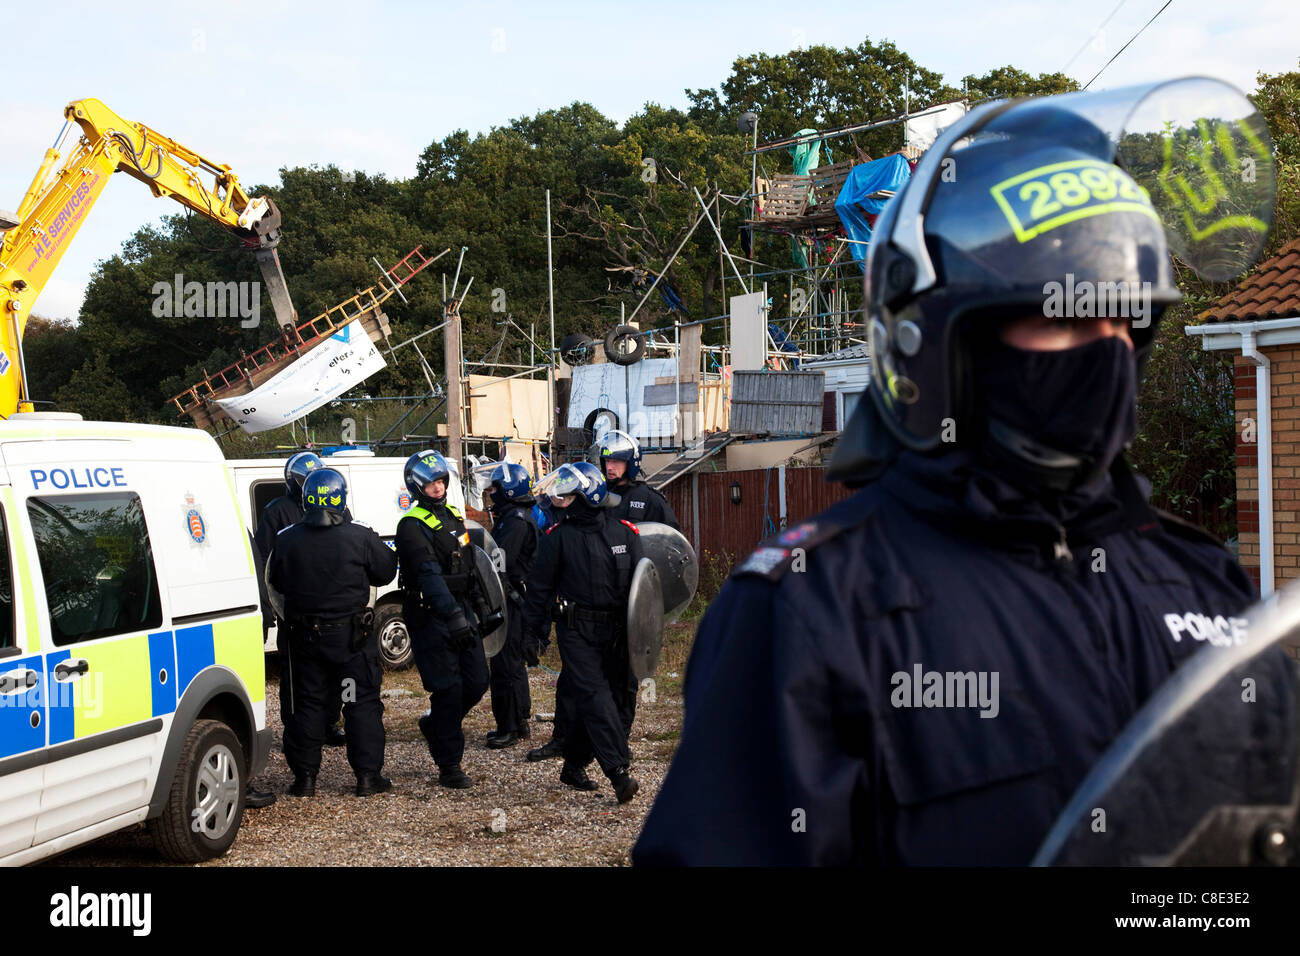 Gypsies And Police Stock Photos  amp  Gypsies And Police Stock Images     Alamy